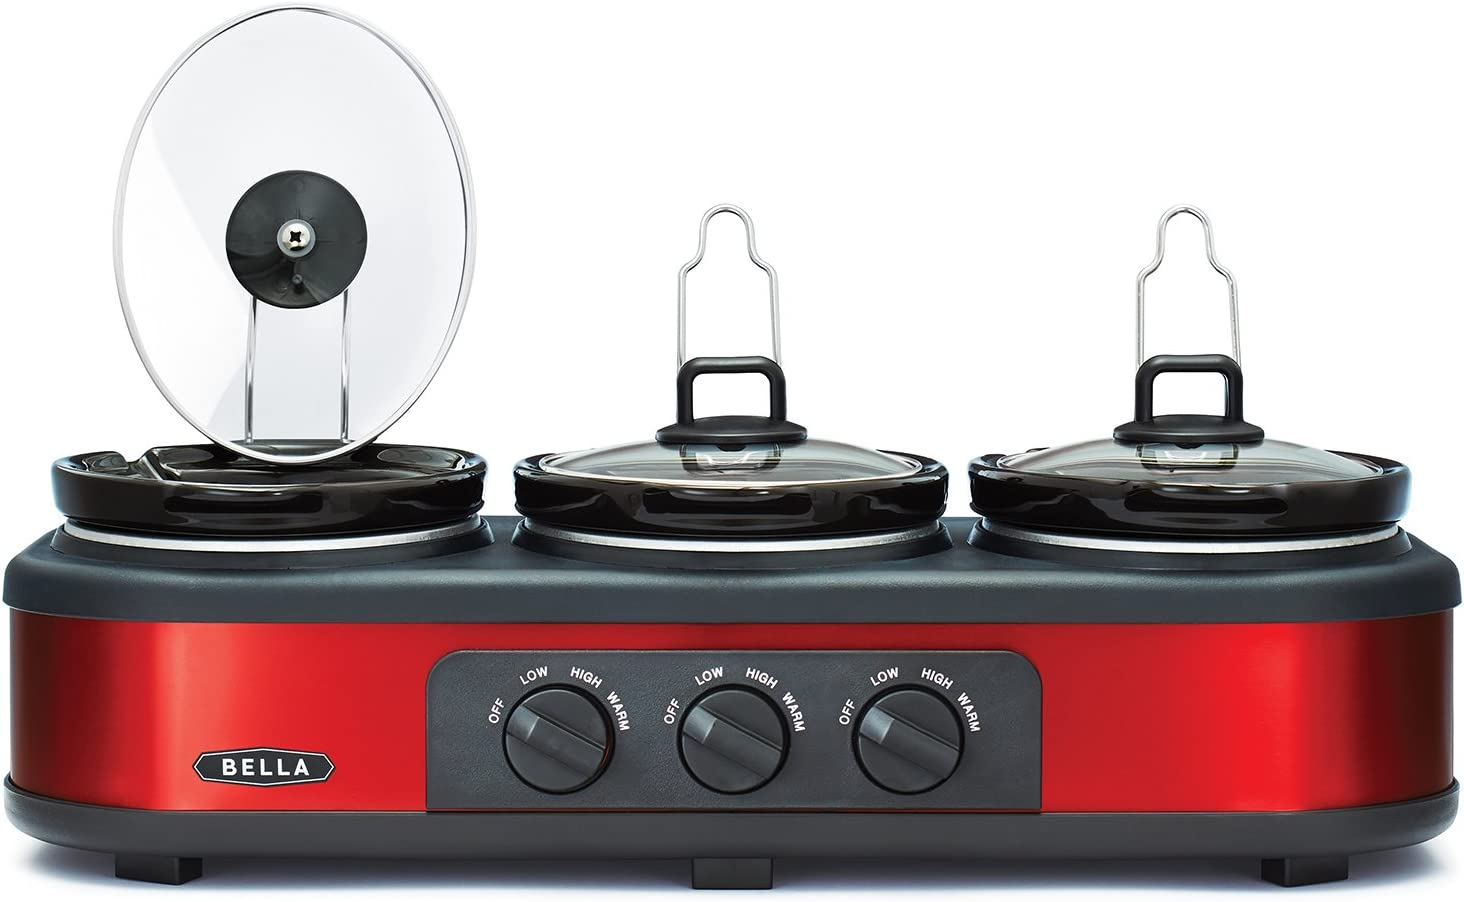 BELLA Triple Slow Cooker and Buffet Server, 3 x 1.5 QT Manual Red